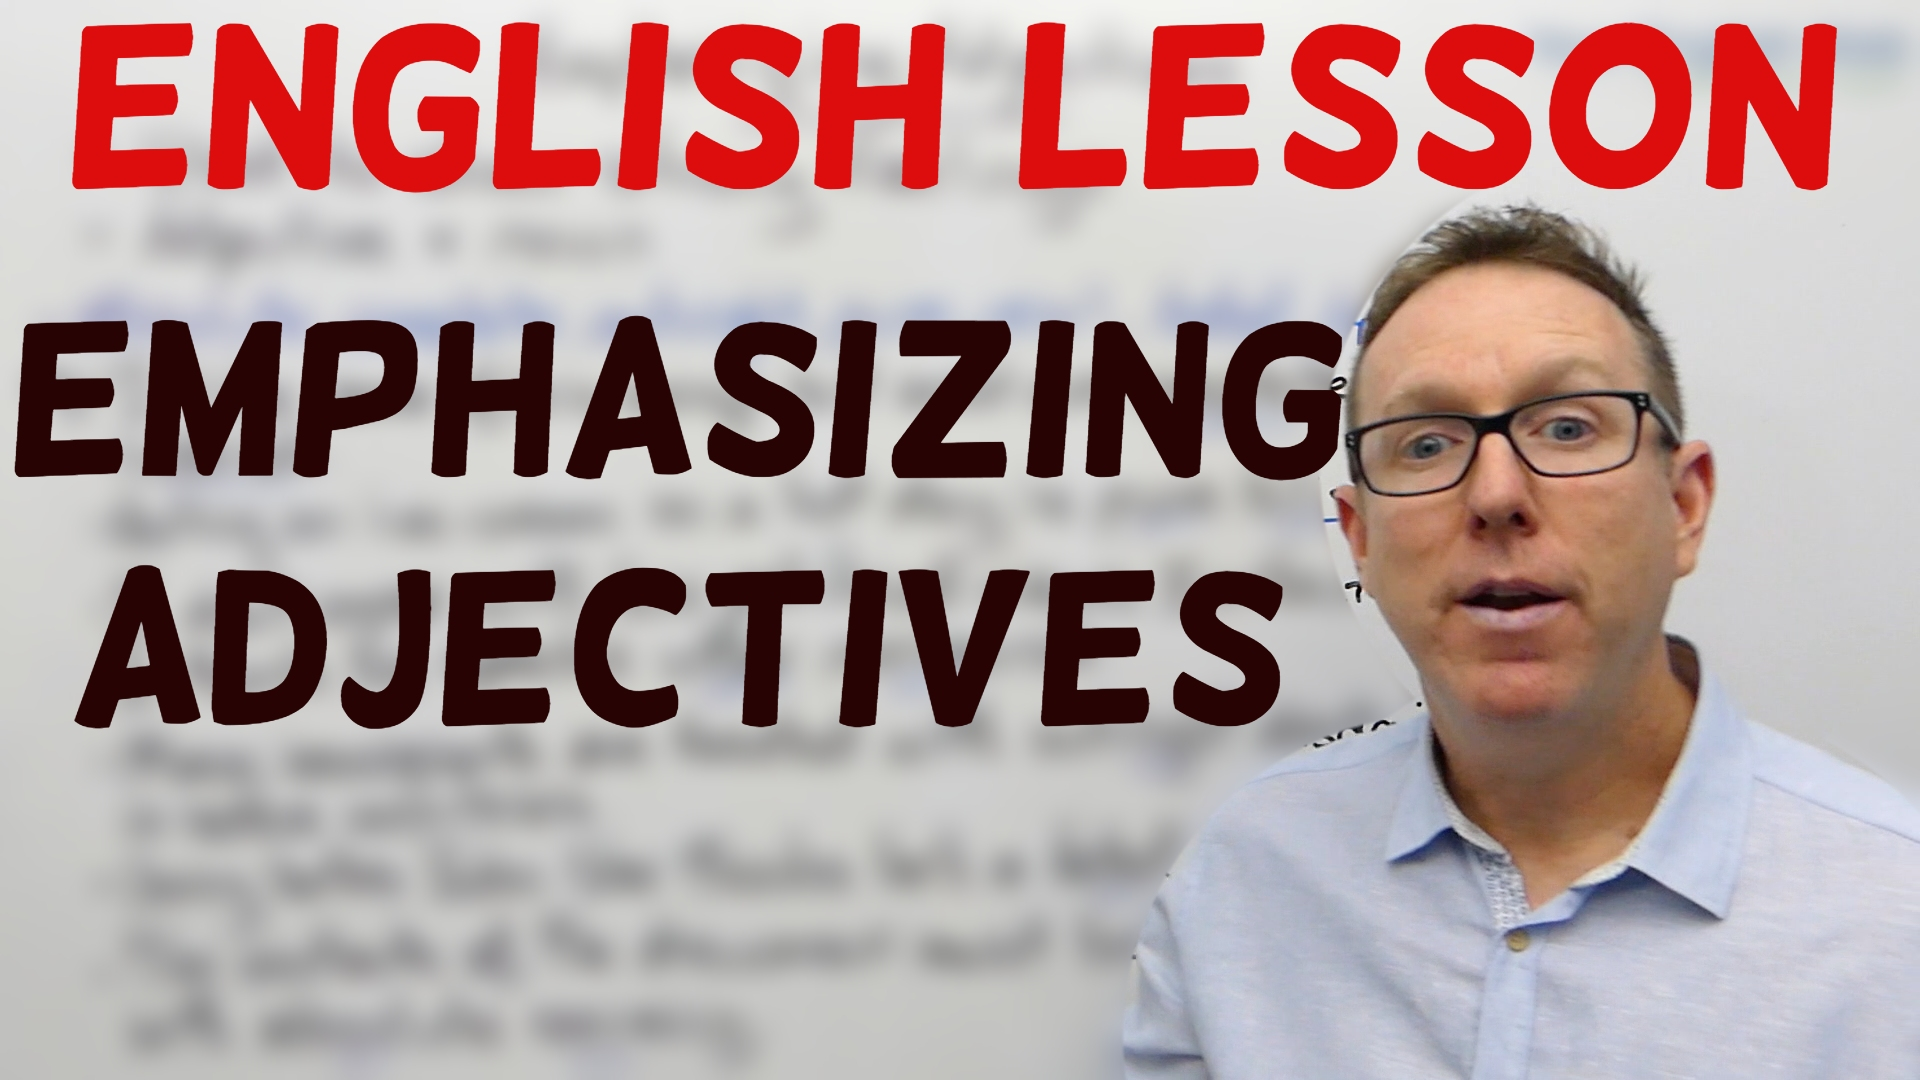 Using Emphasizing Adjectives in English